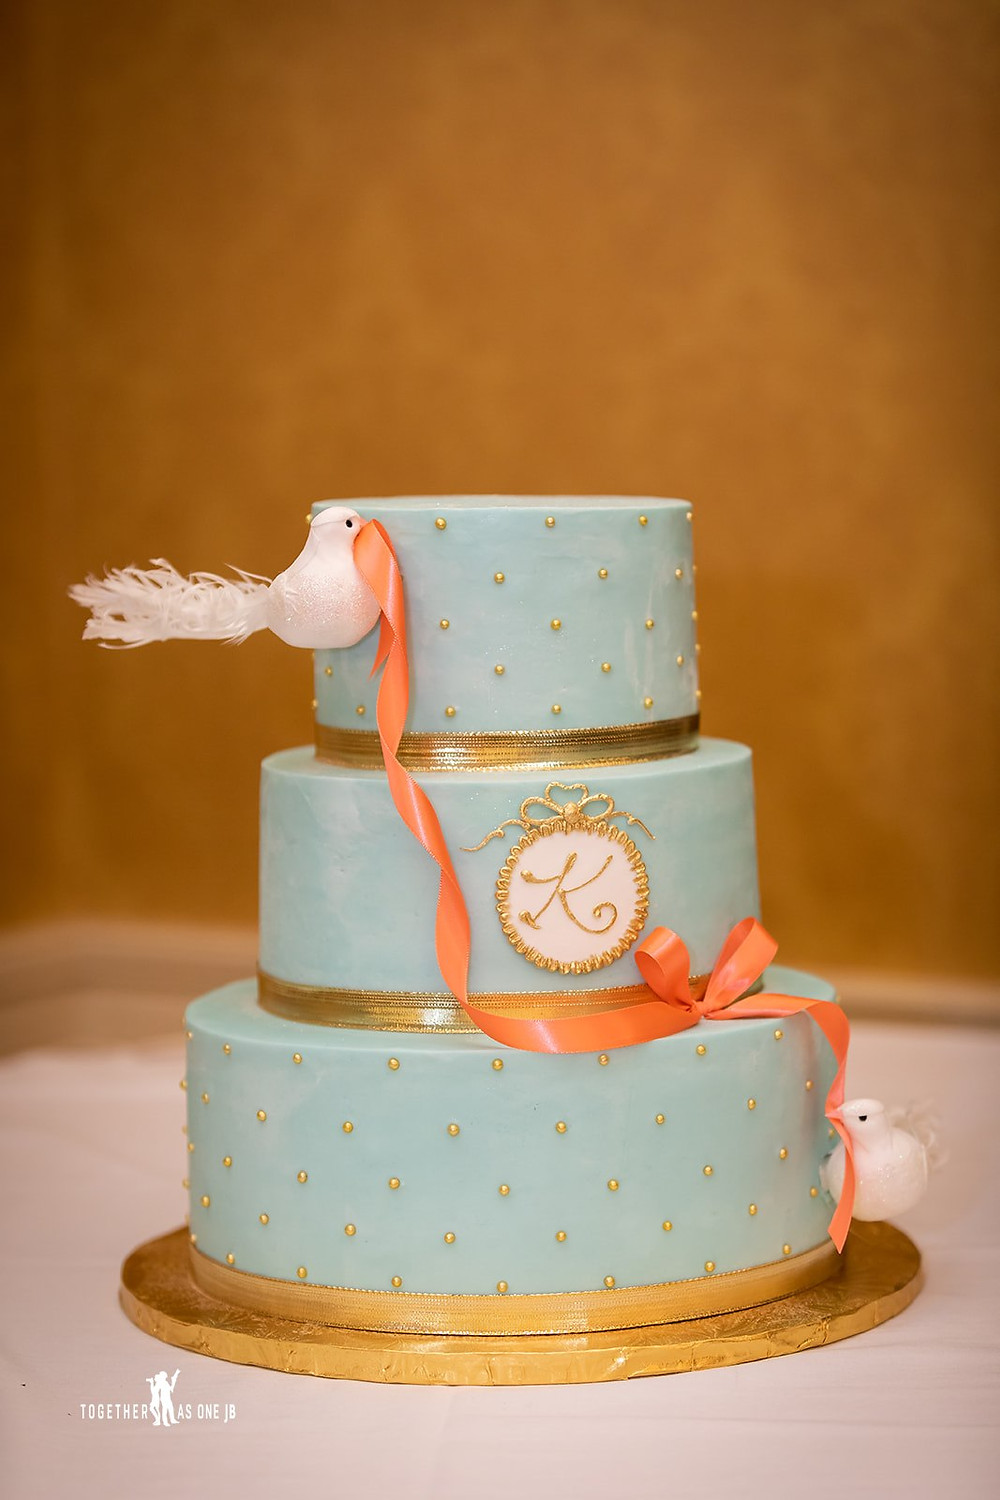 Cincinnati family photographer captures image of beautiful baby shower blue cake.